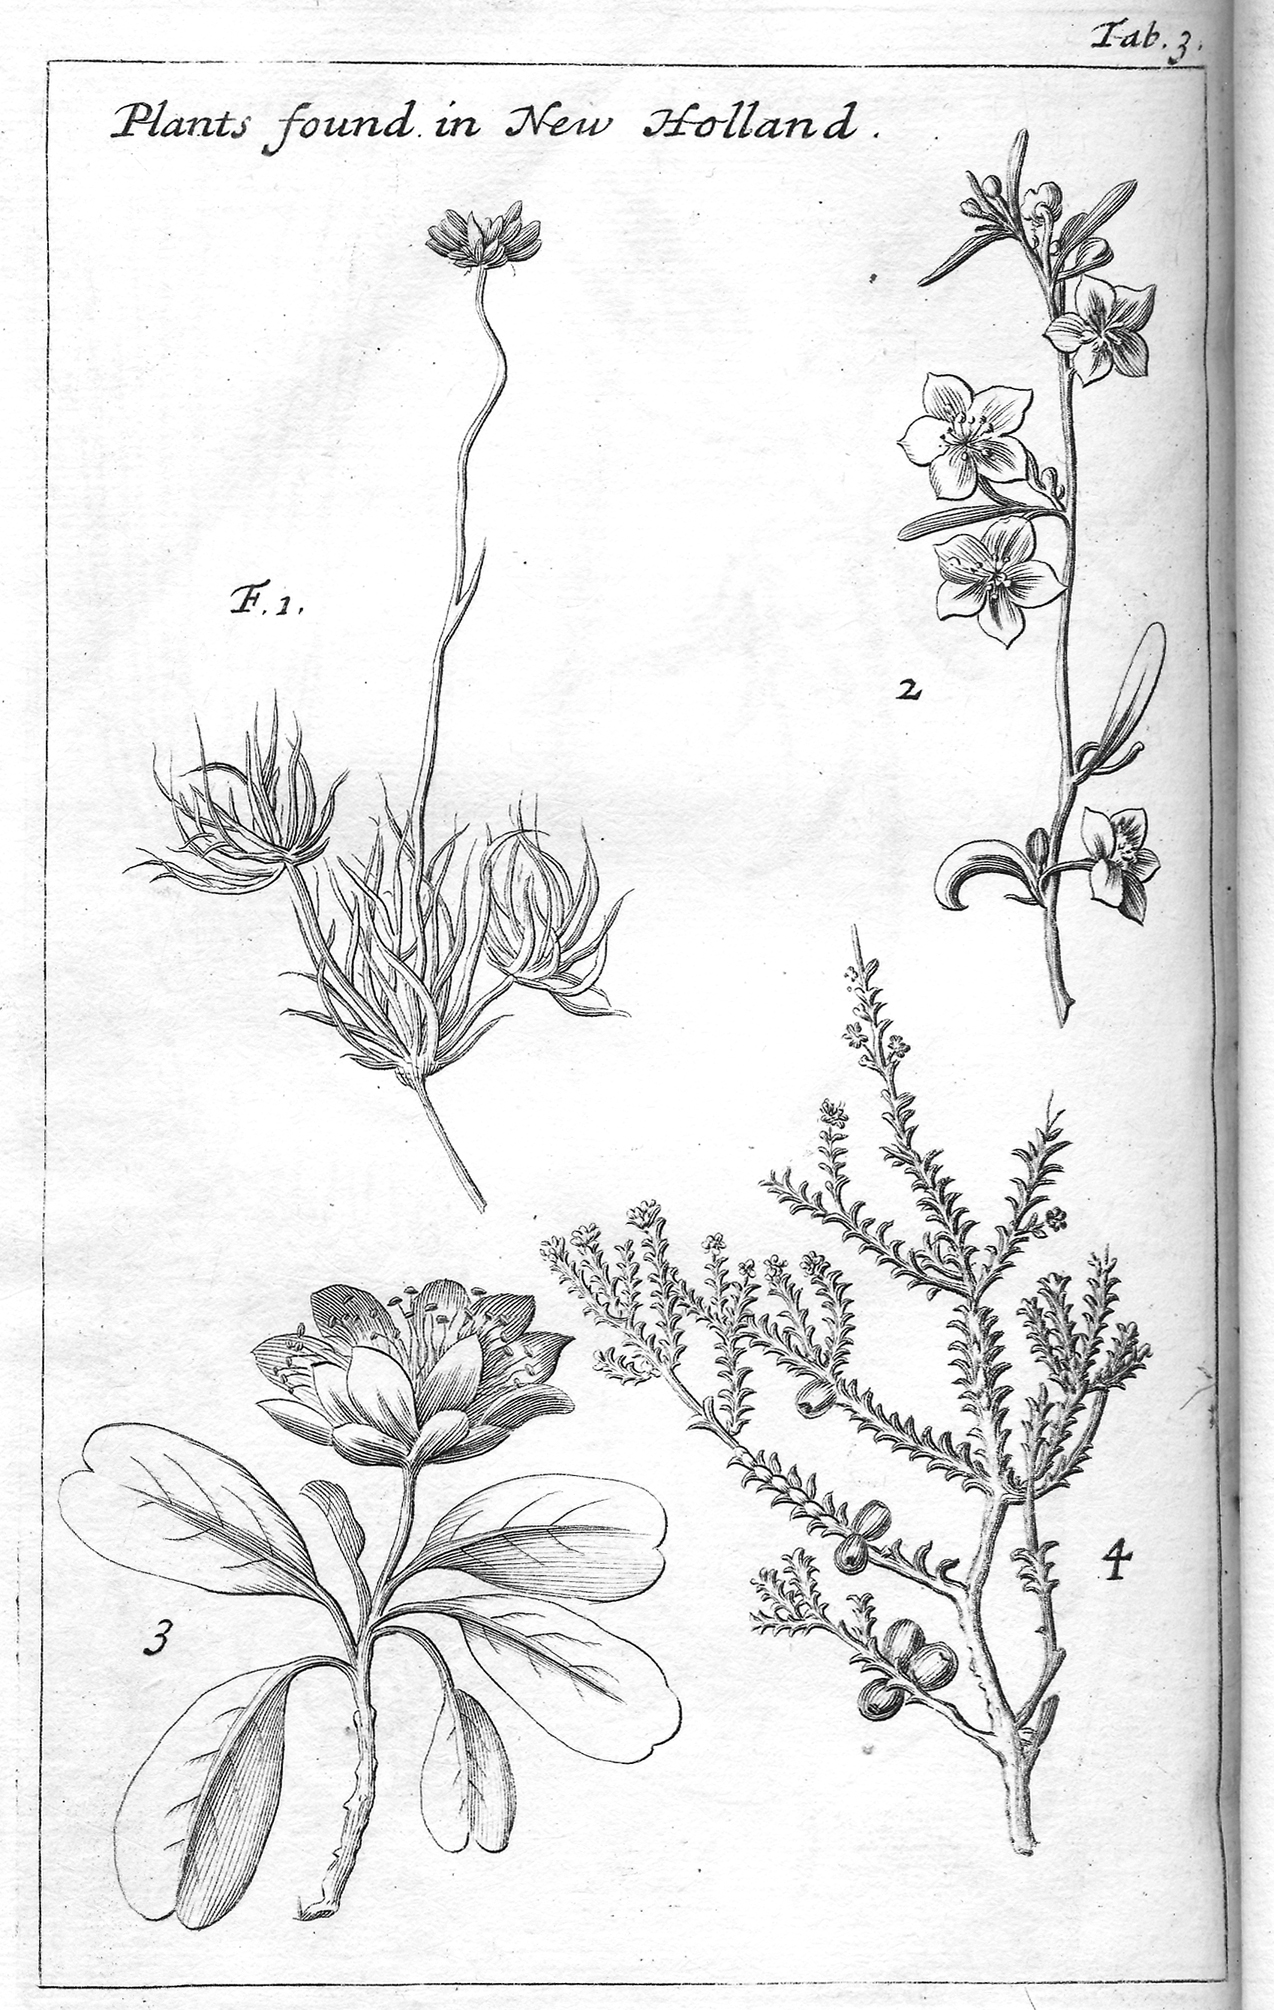 Drawn plant scientific Dampier  William